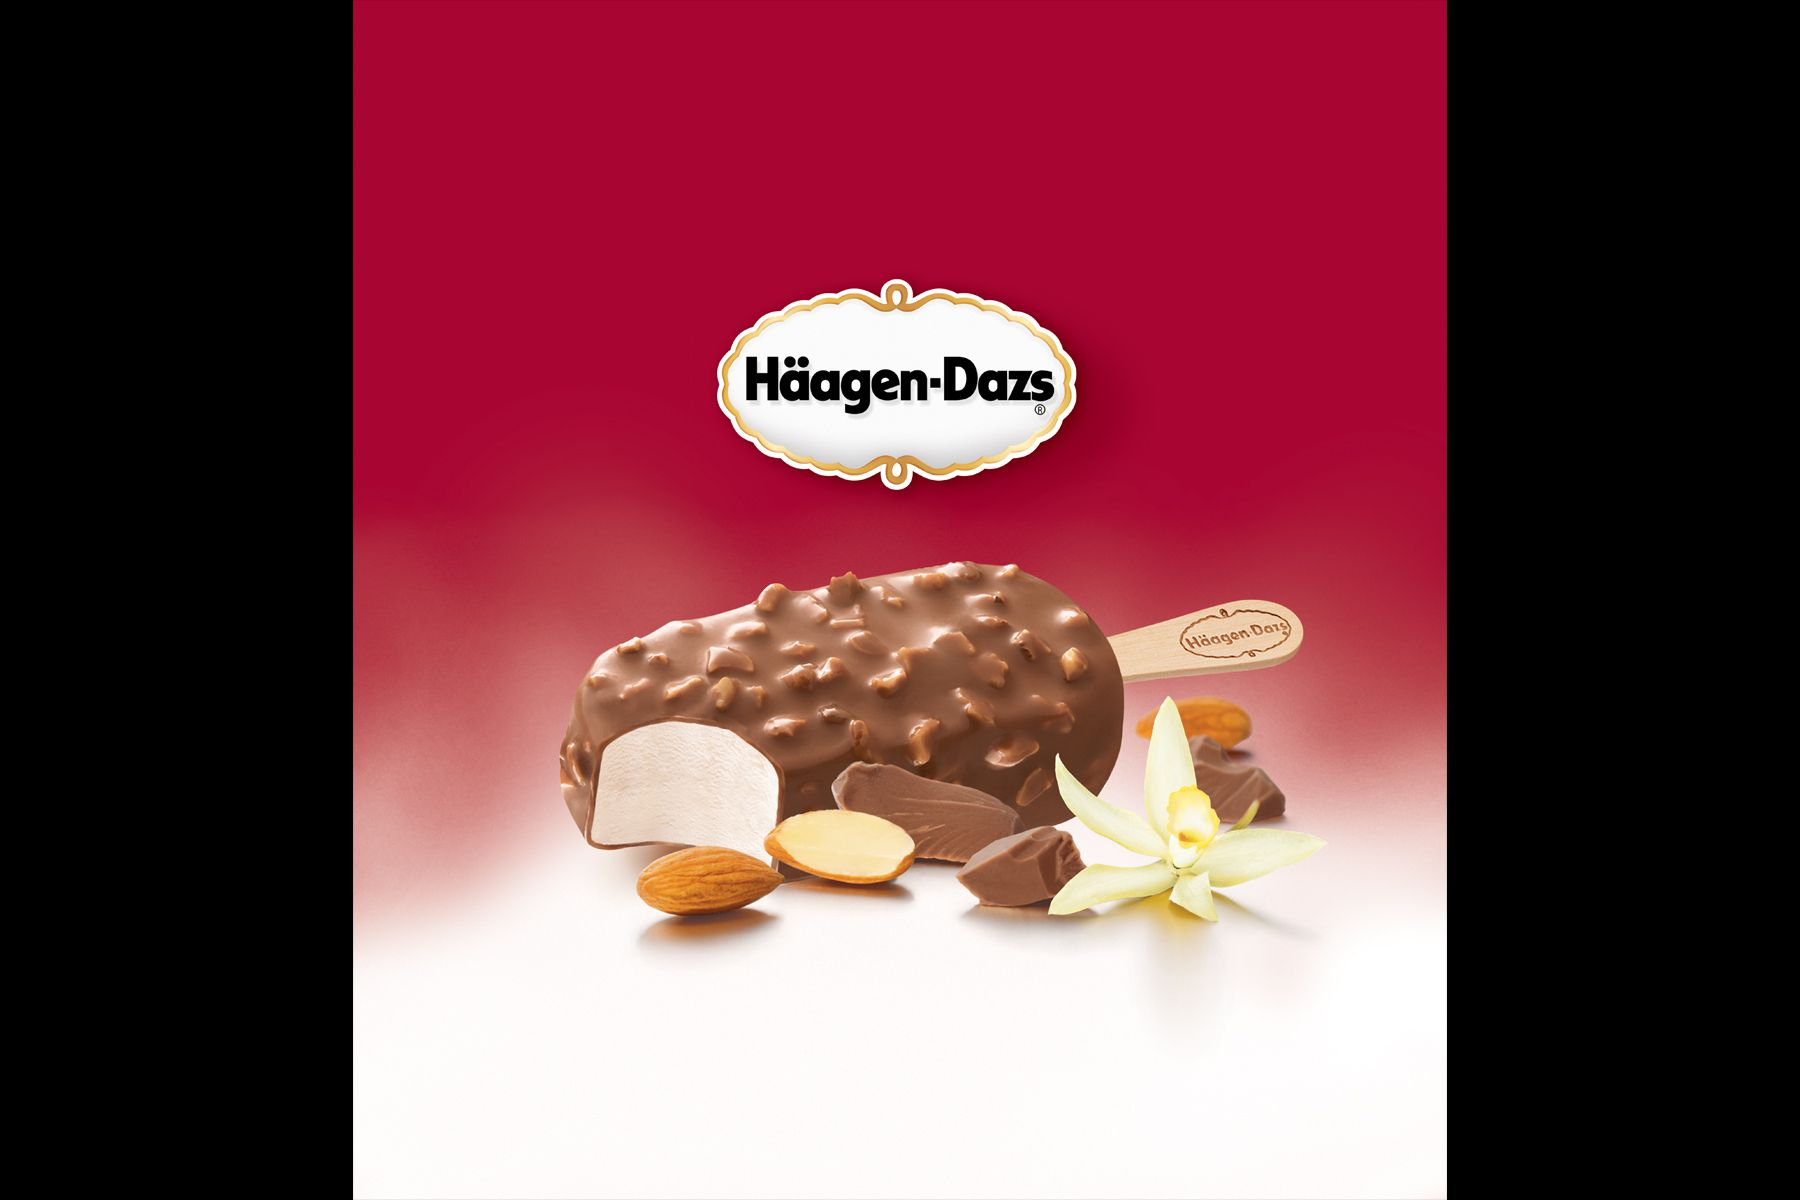 Haagen-Dazs Packaging